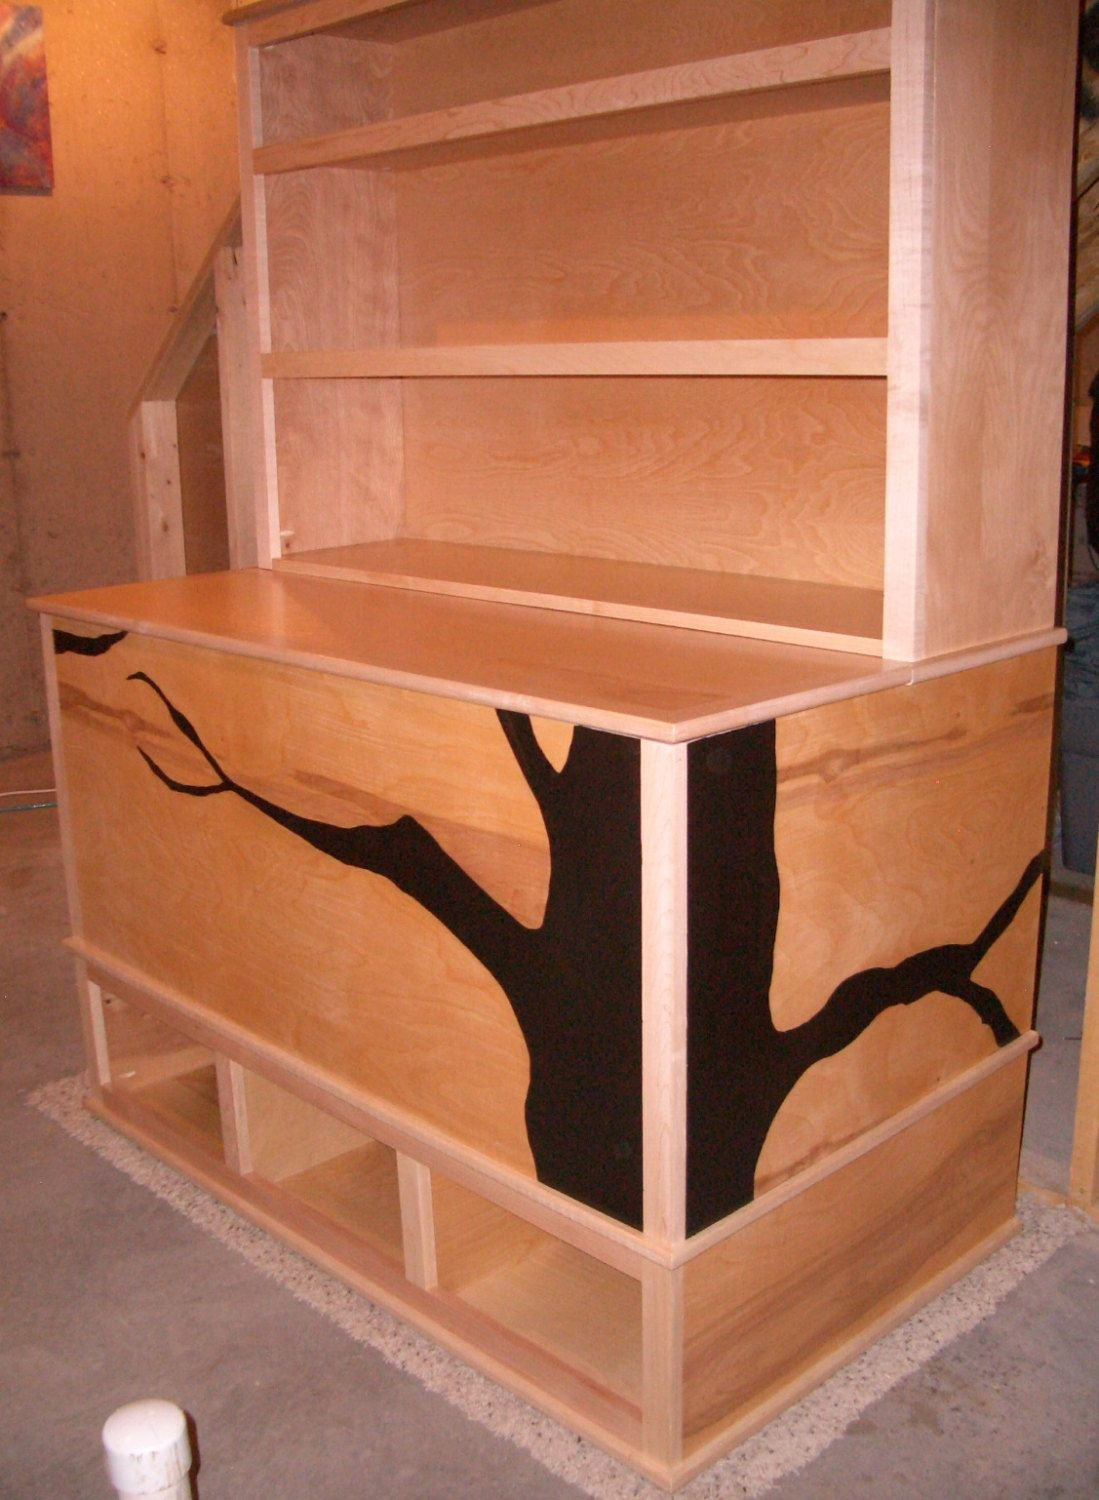 Woodworking Plans Toy Box With Cubbies And Bookshelf Etsy Woodworking Plans Toys Diy Wooden Toys Plans Woodworking Toys